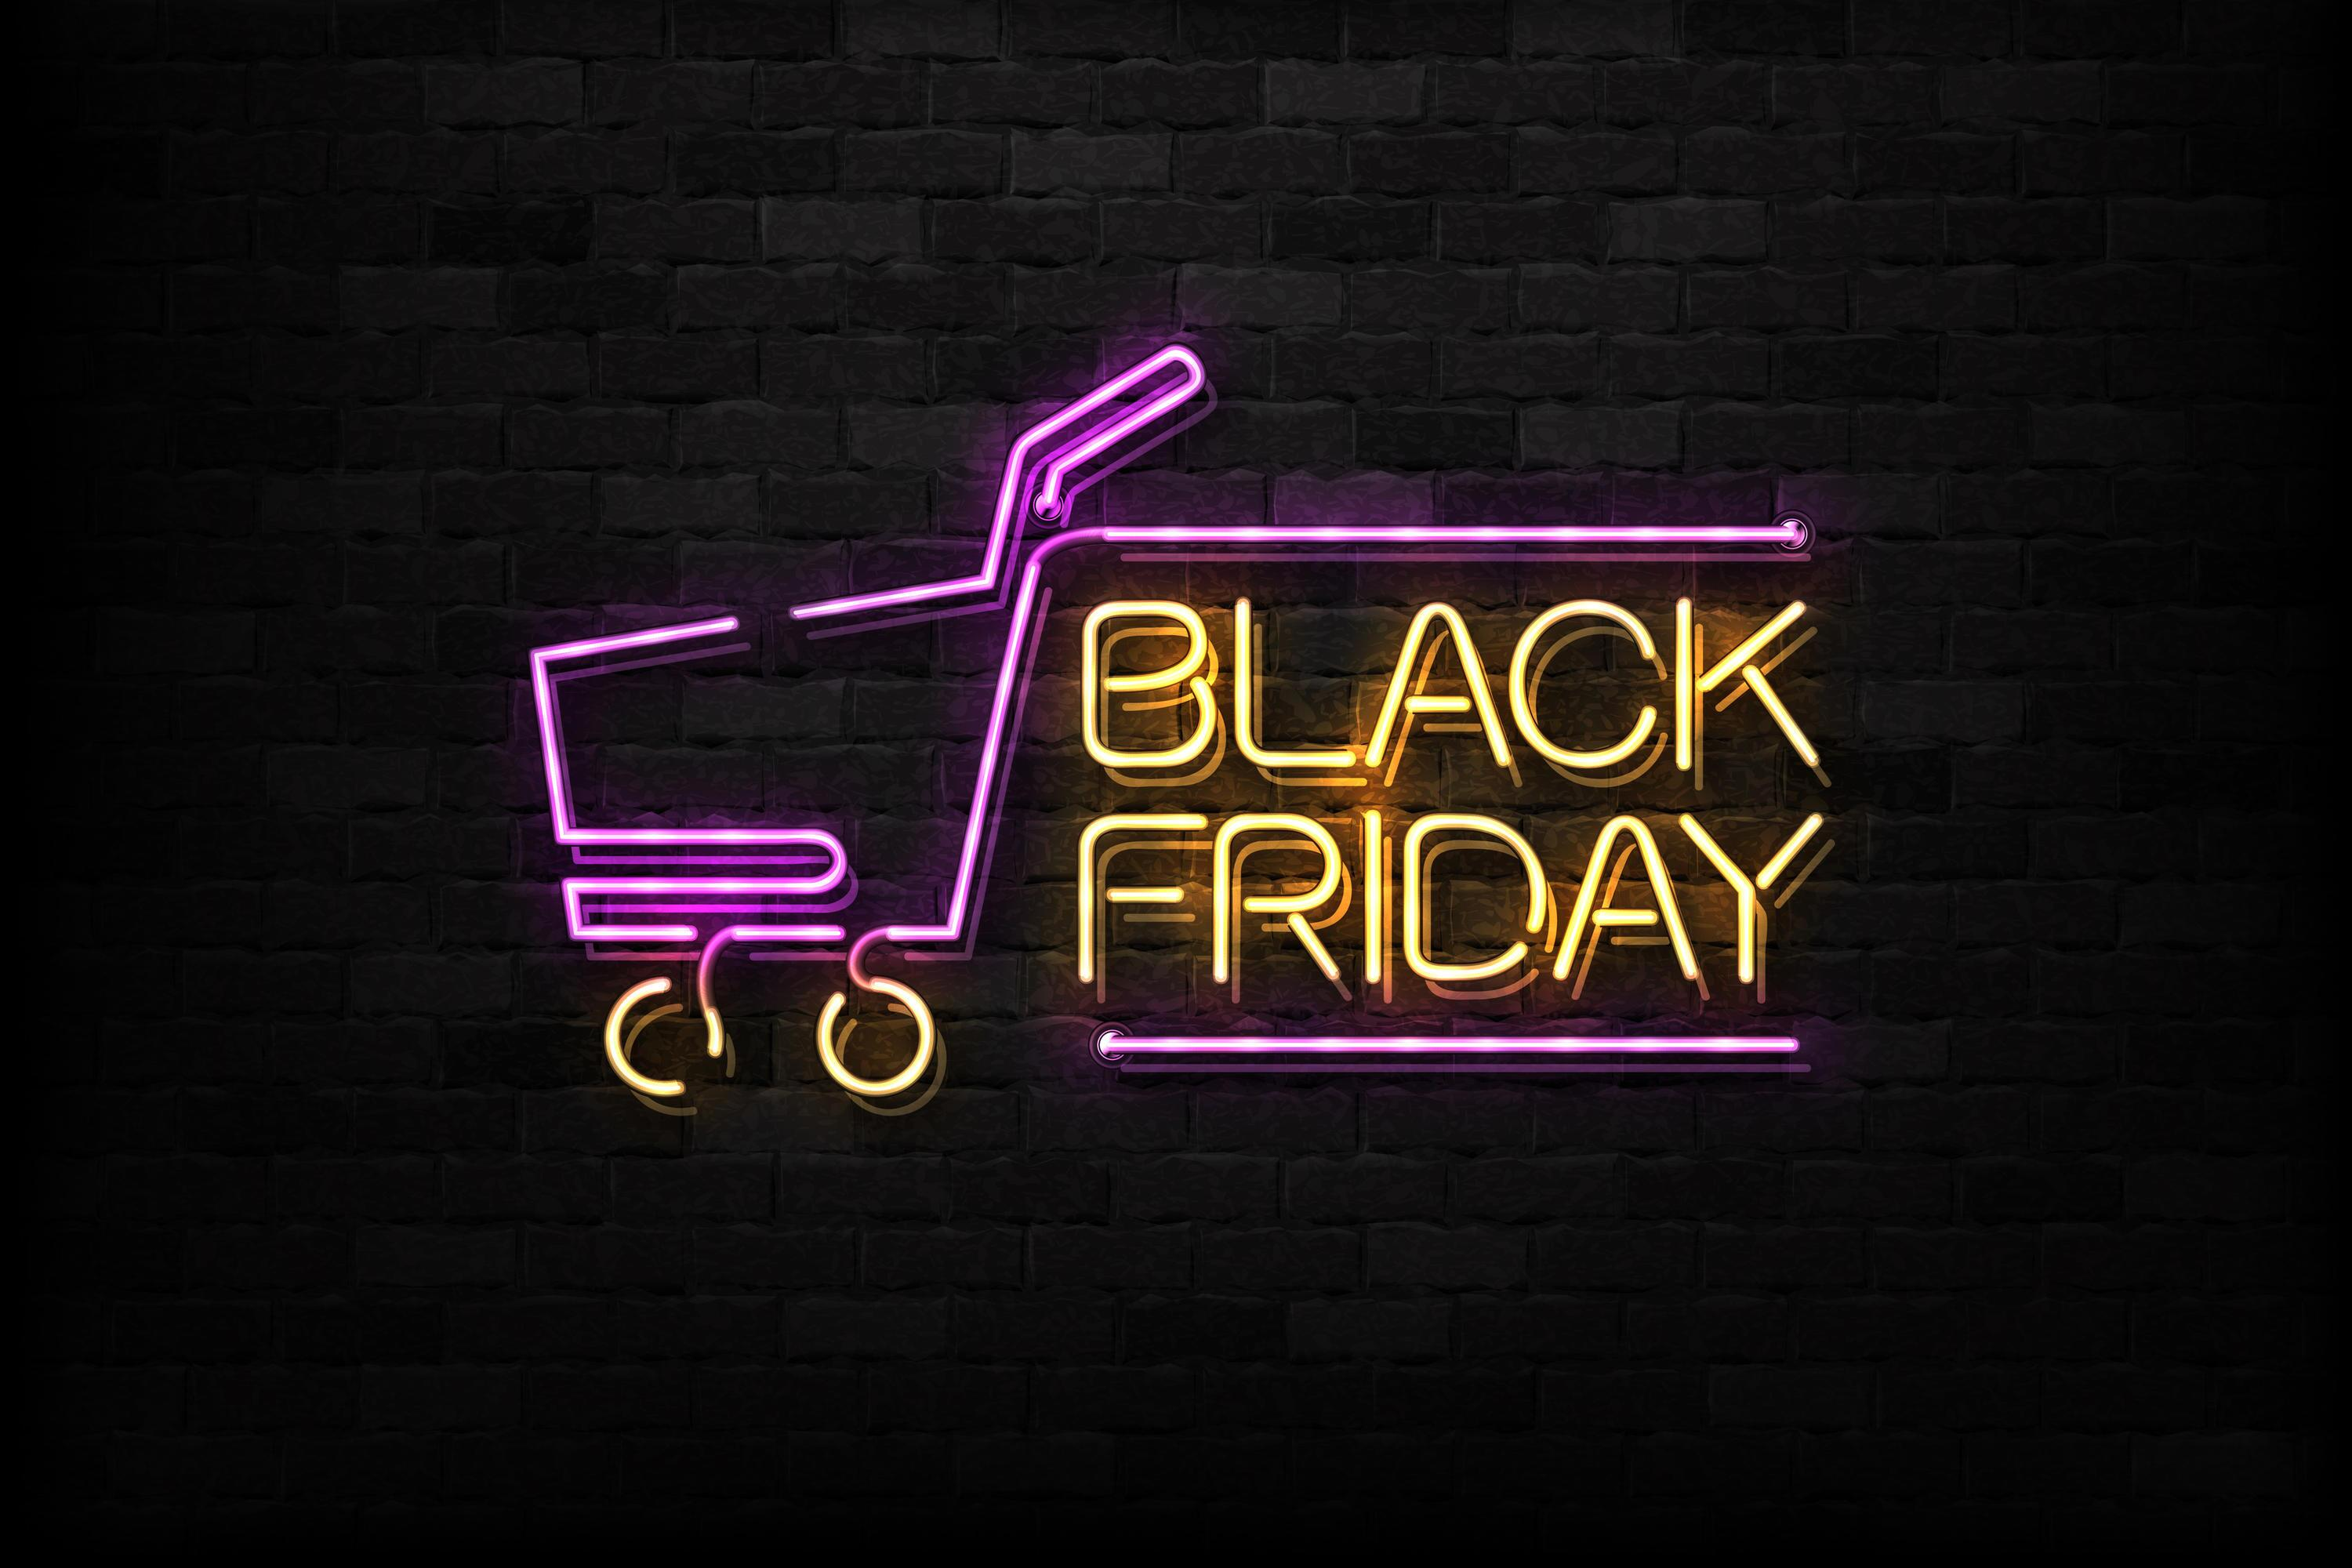 Bild zu Cyberweek, 2019, Cyber Monday, Black Friday, Schnäppchen, Shopping, Sparen, Amazon, Deals